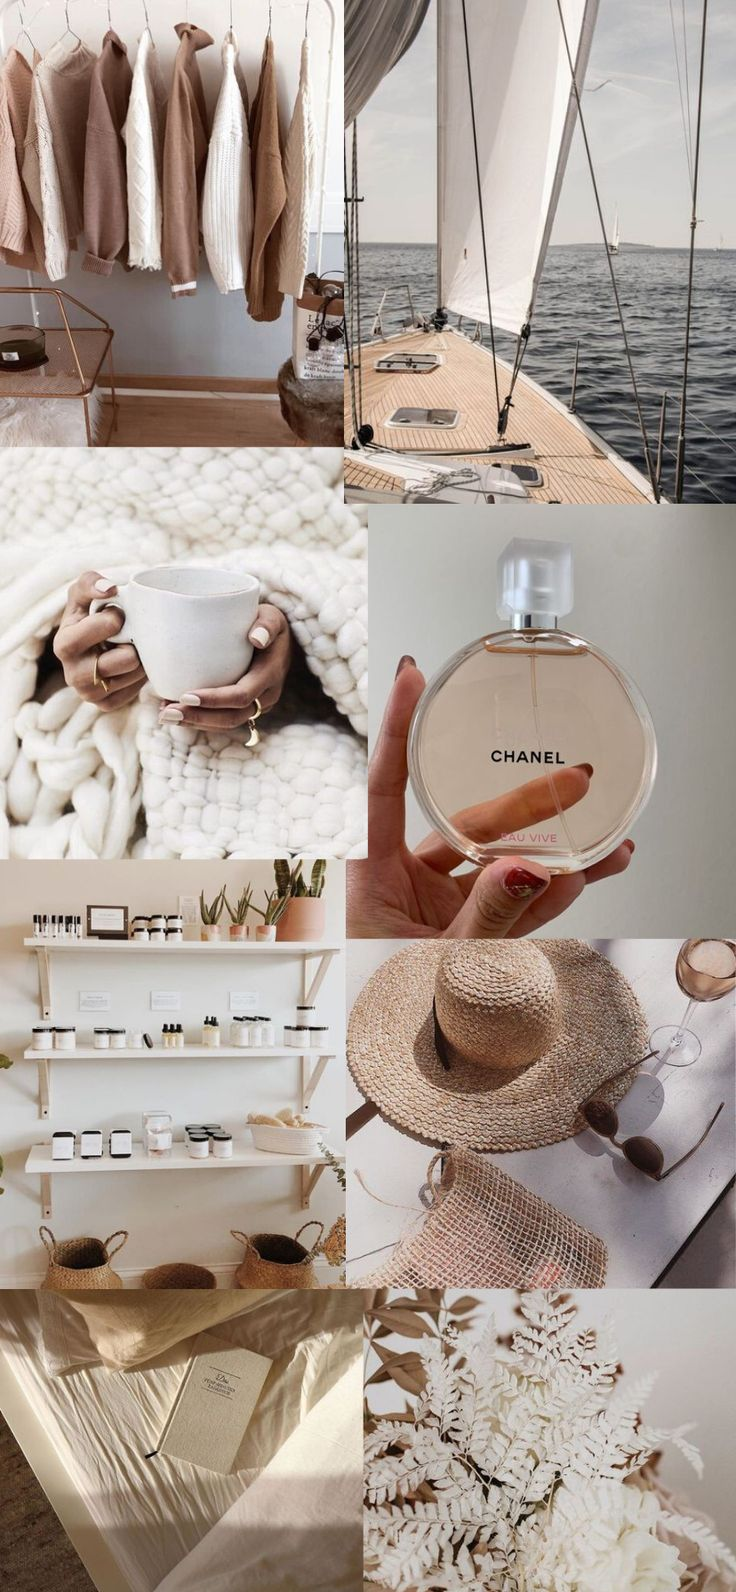 You can also upload and share your favorite brown aesthetic desktop wallpapers. Neutral Aesthetic in 2020 | Neutral wallpaper, Aesthetic ...